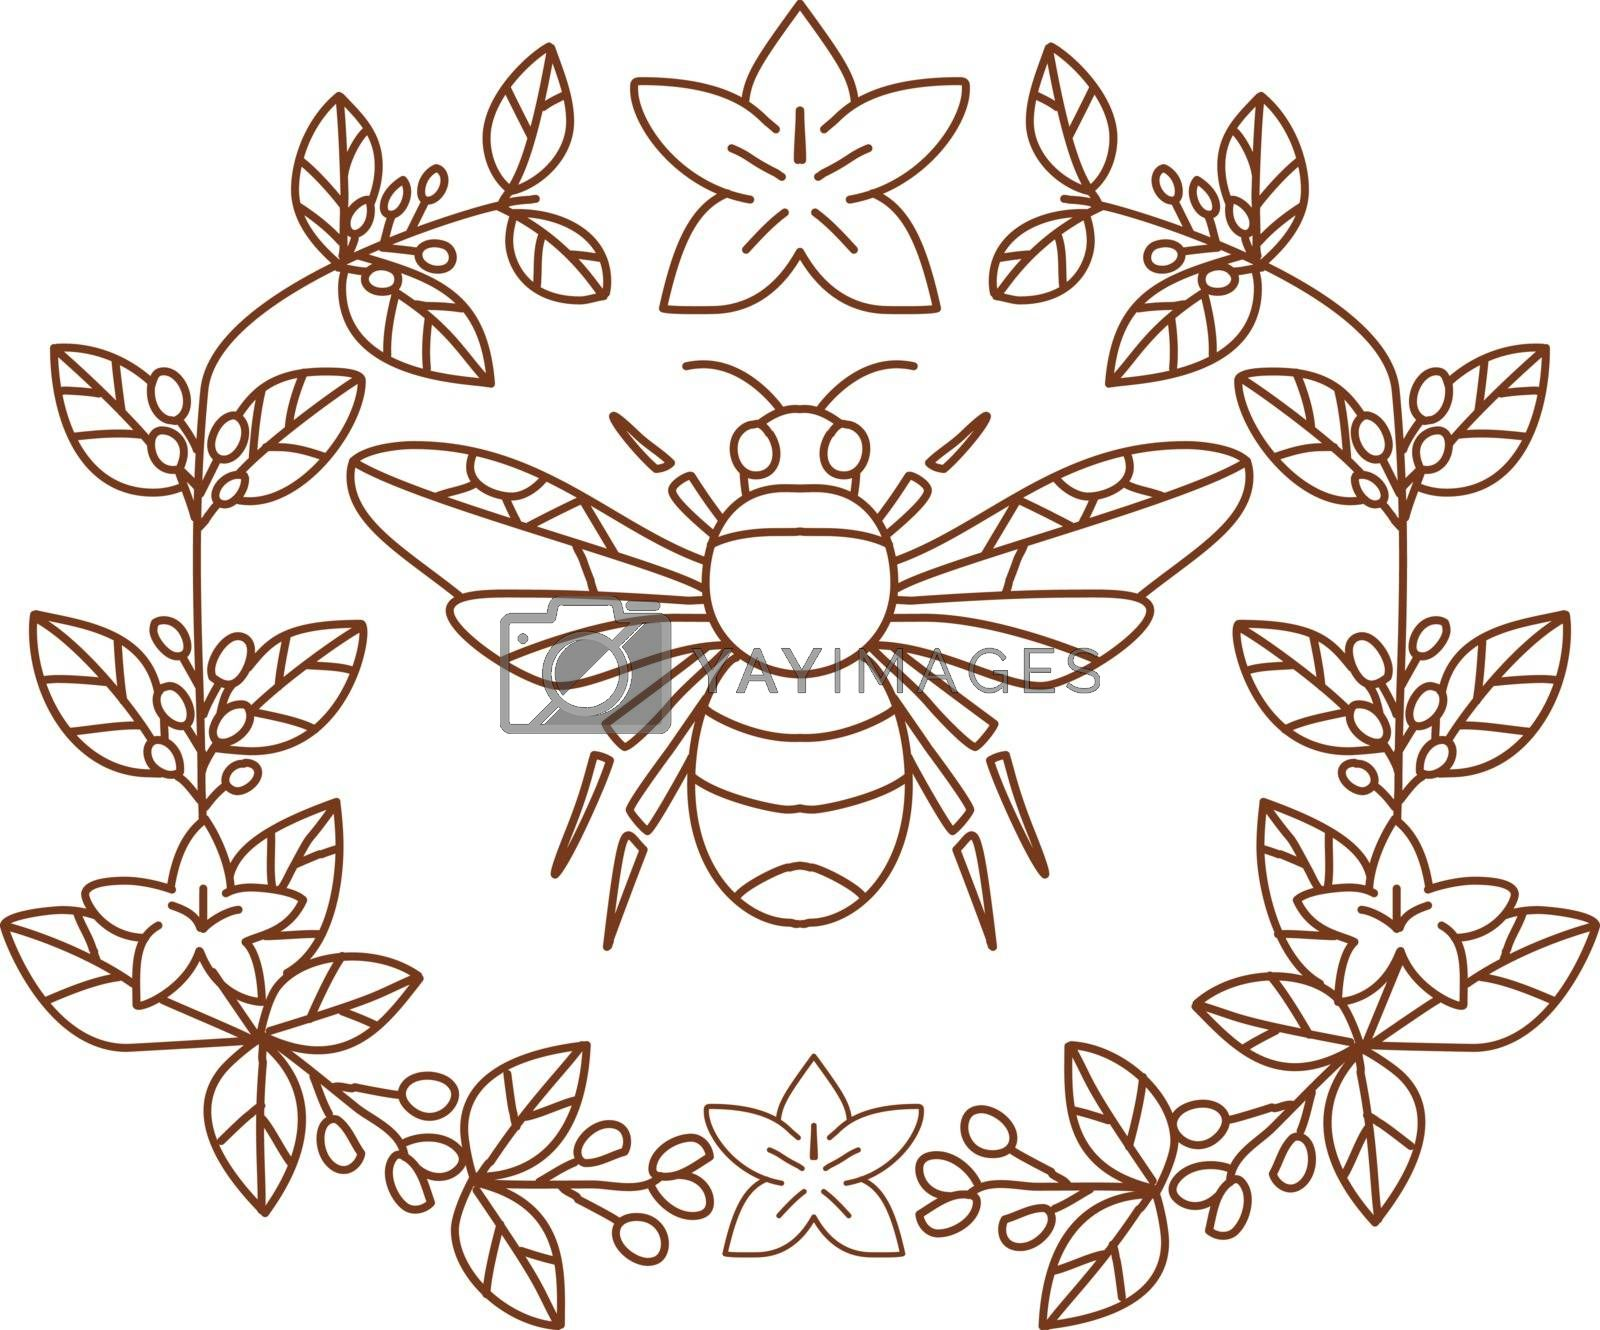 Icon style illustration of Bumblebee  member of genus Bombus, part of Apidae with open wing and framed with Coffee Flower floral Leaves on isolated background.